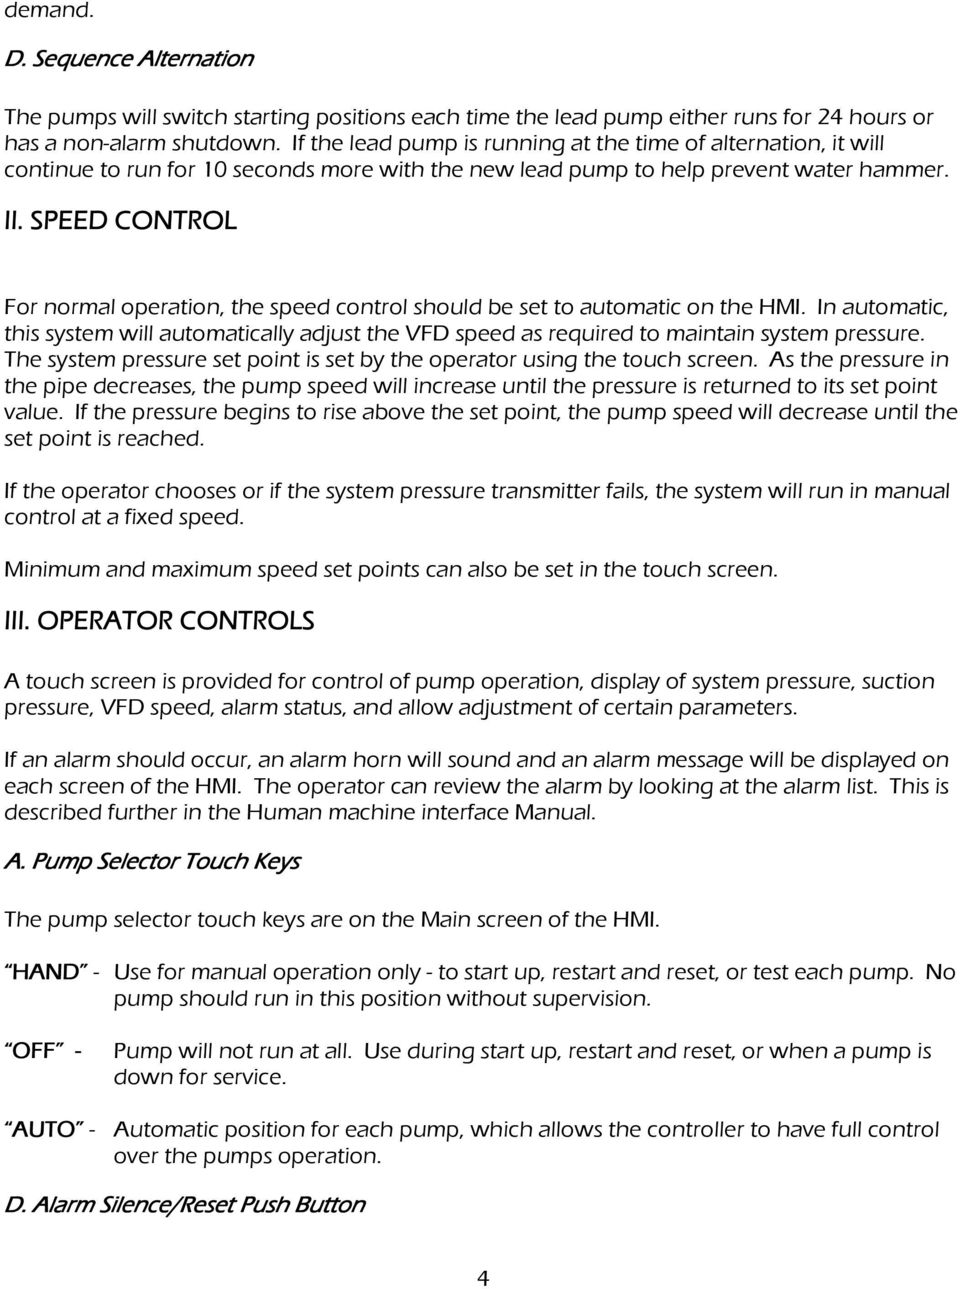 SPEED CONTROL For normal operation, the speed control should be set to automatic on the HMI. In automatic, this system will automatically adjust the VFD speed as required to maintain system pressure.